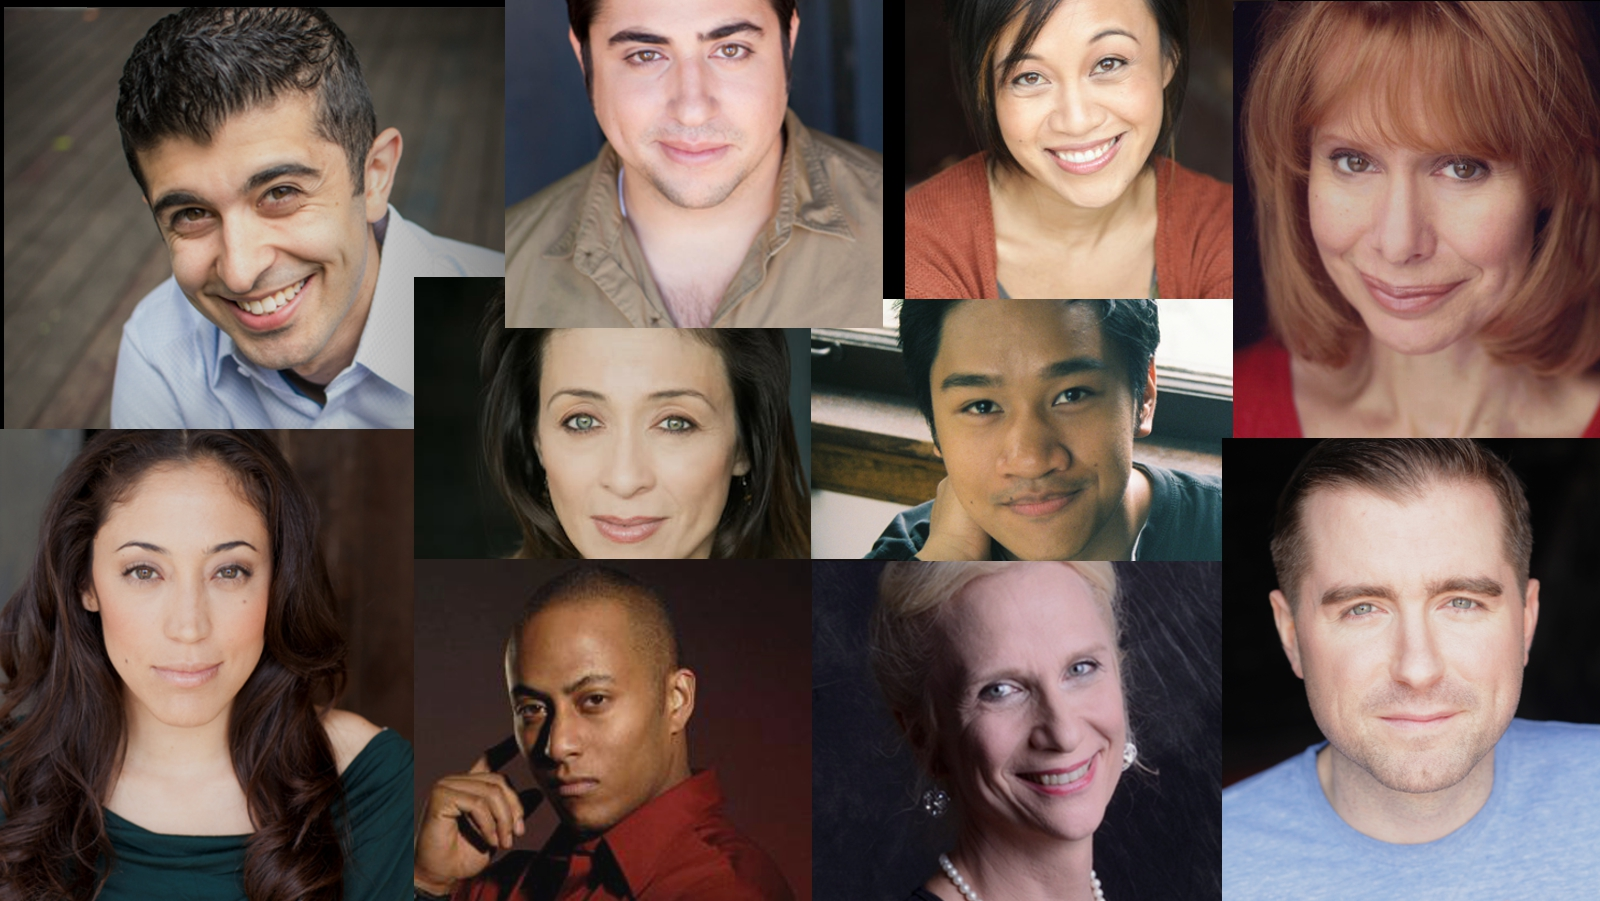 Top row from left: Behzad Dabu, Todd Garcia, Emjoy Gavino, Barbara Robertson  Bottom row from left: Yunuen Pardo, Anthony Fleming III, Delia Kropp, Michael Patrick Thornton  Middle: Charin Alvarez, Bryan Bosque